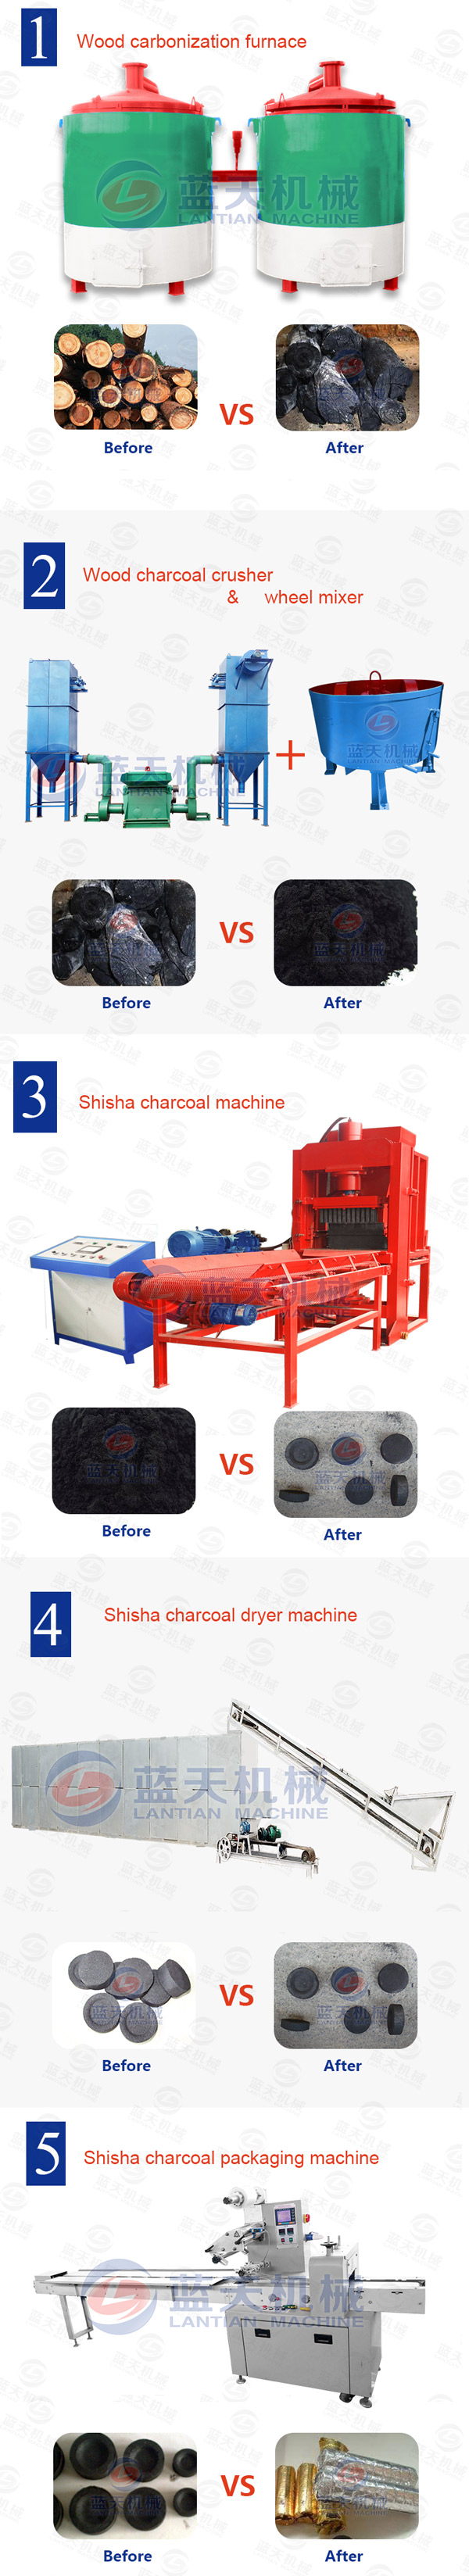 shisha charcoal briquetting machine manufacturer